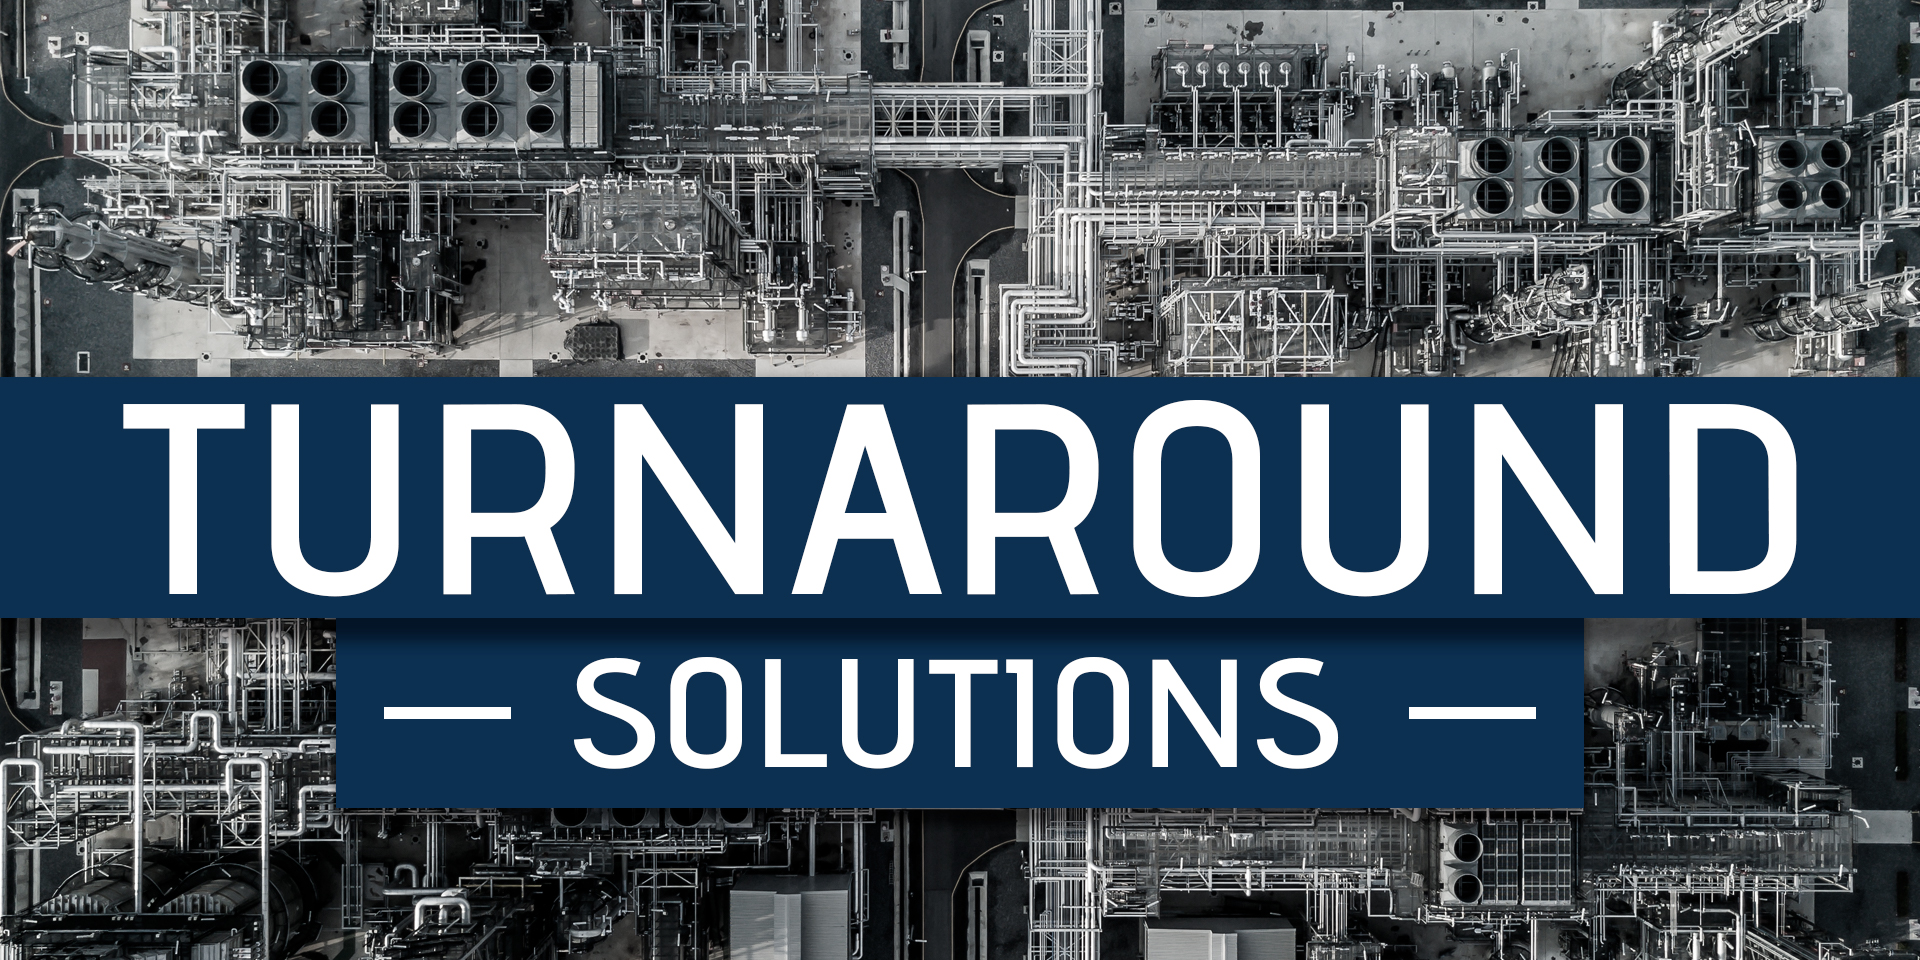 Turnaround Solutions